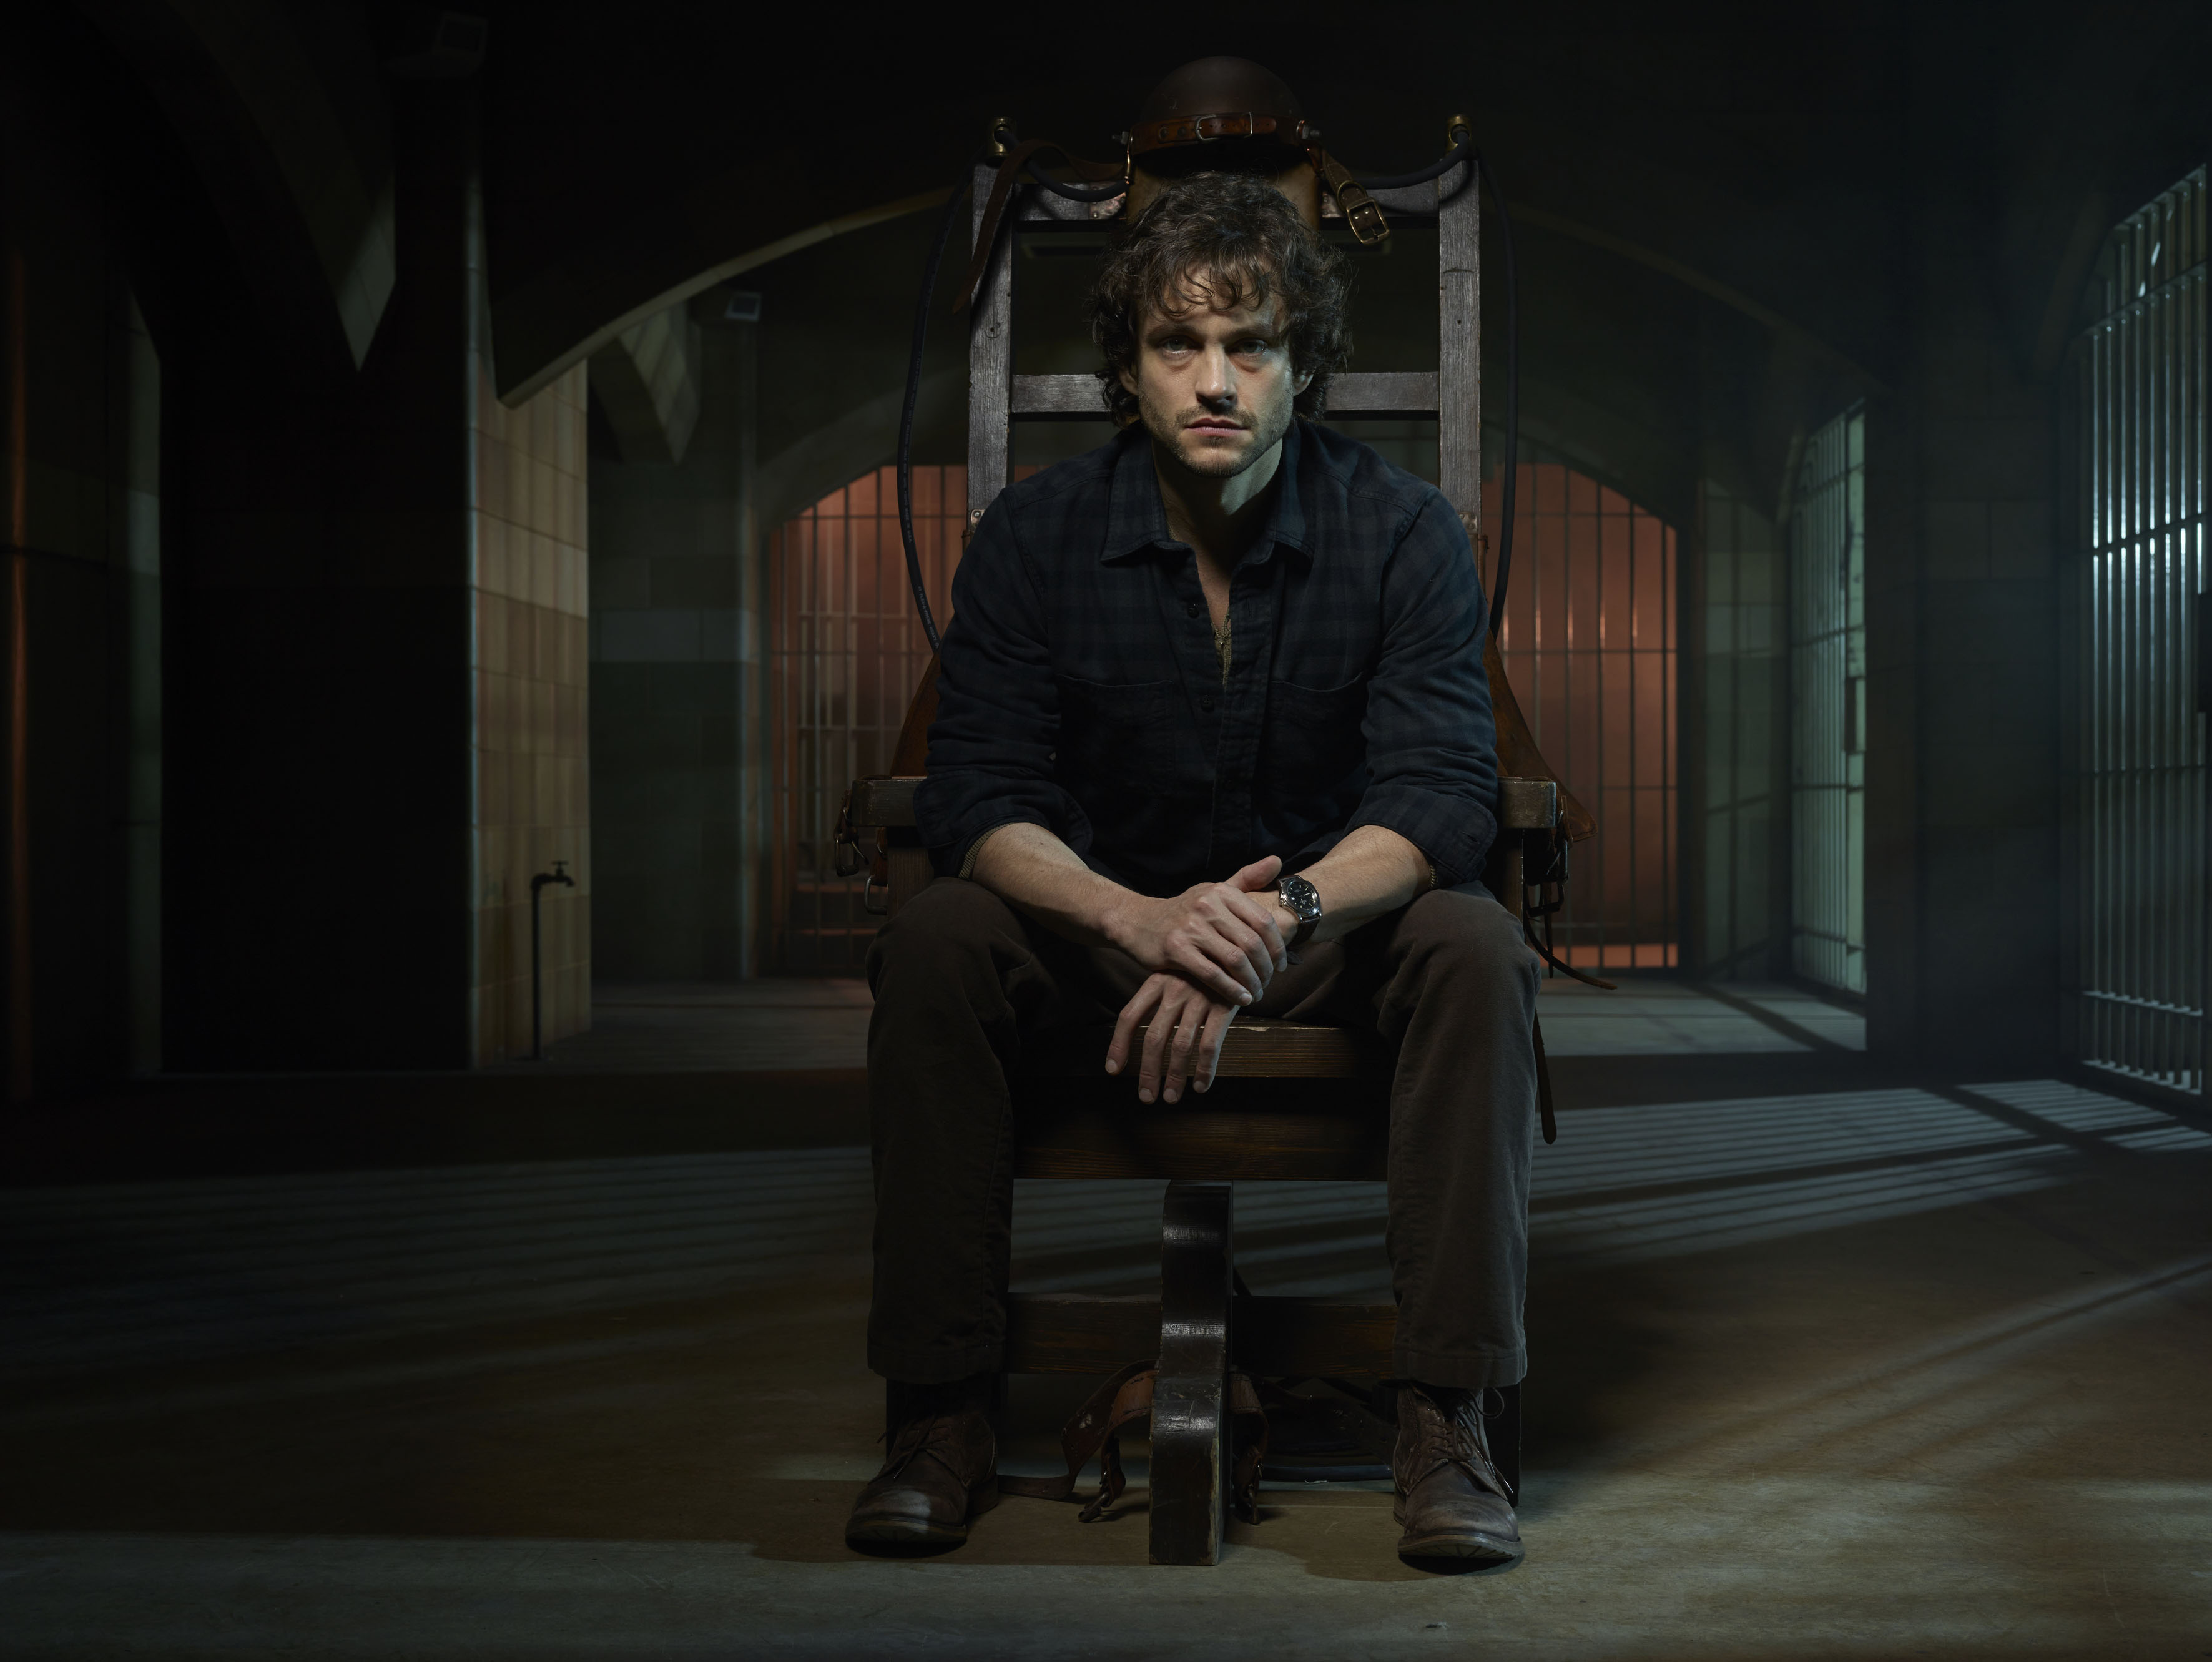 hannibal wallpaper download